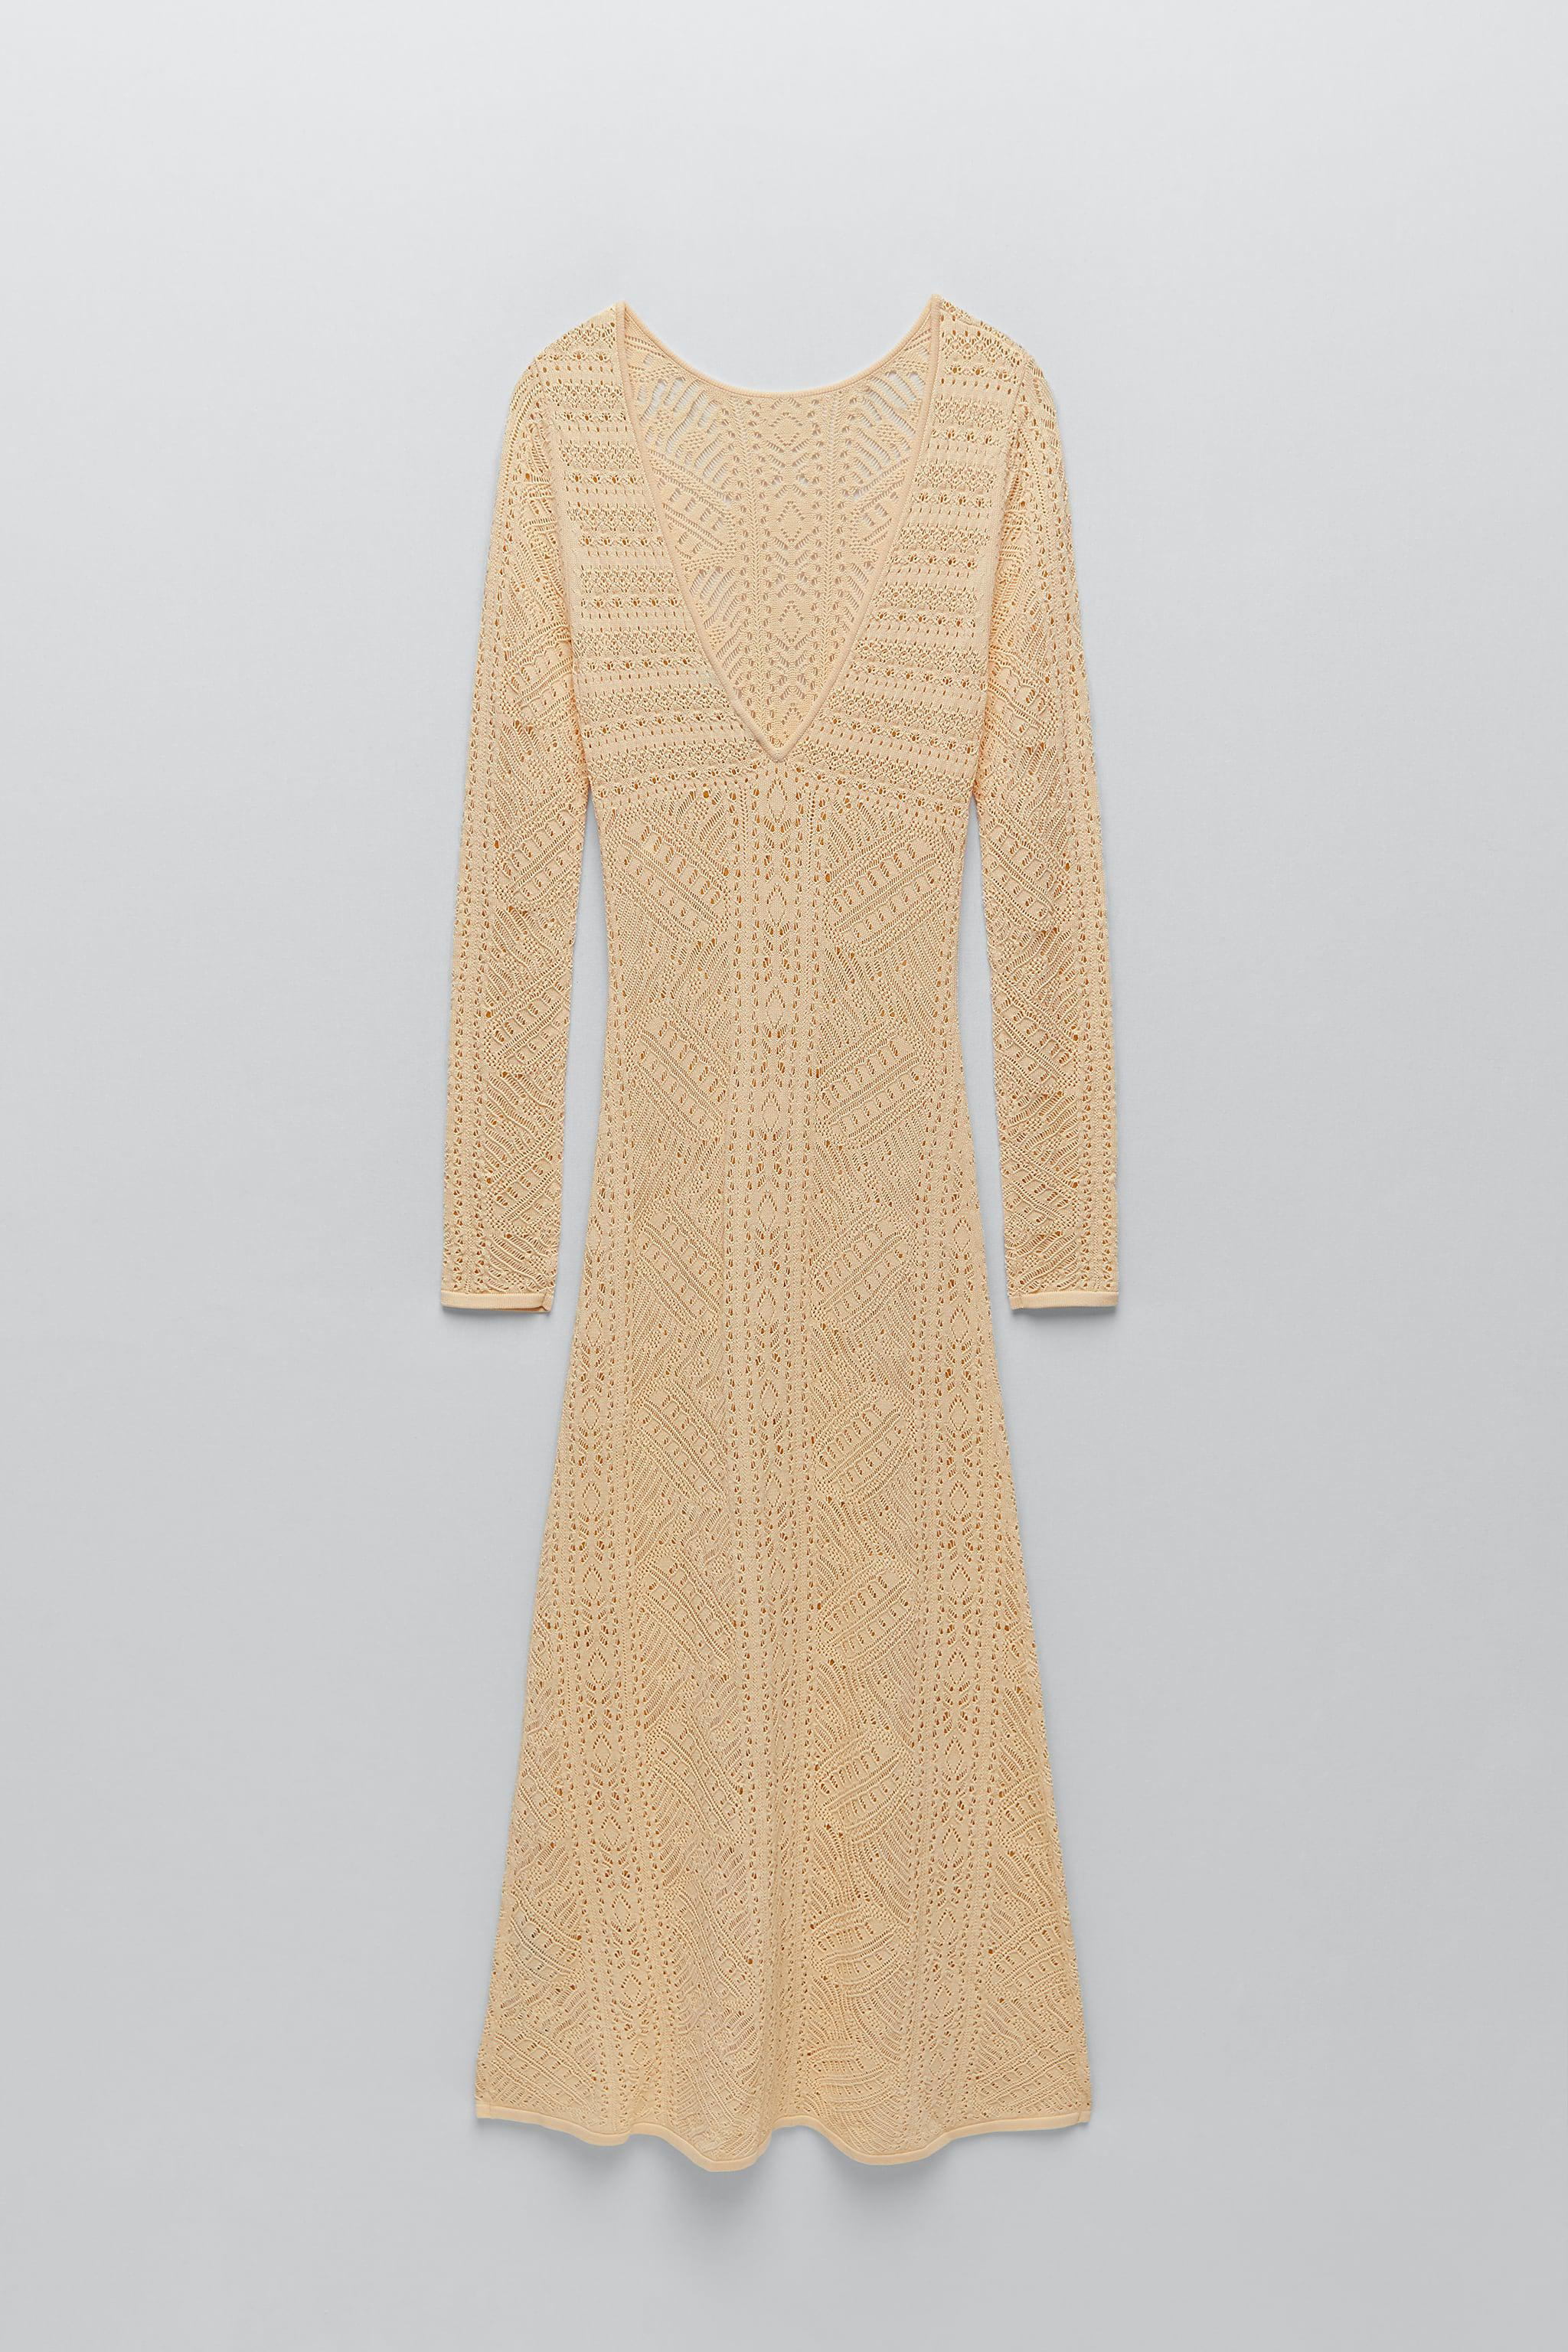 POINTELLE KNIT DRESS LIMITED EDITION 3